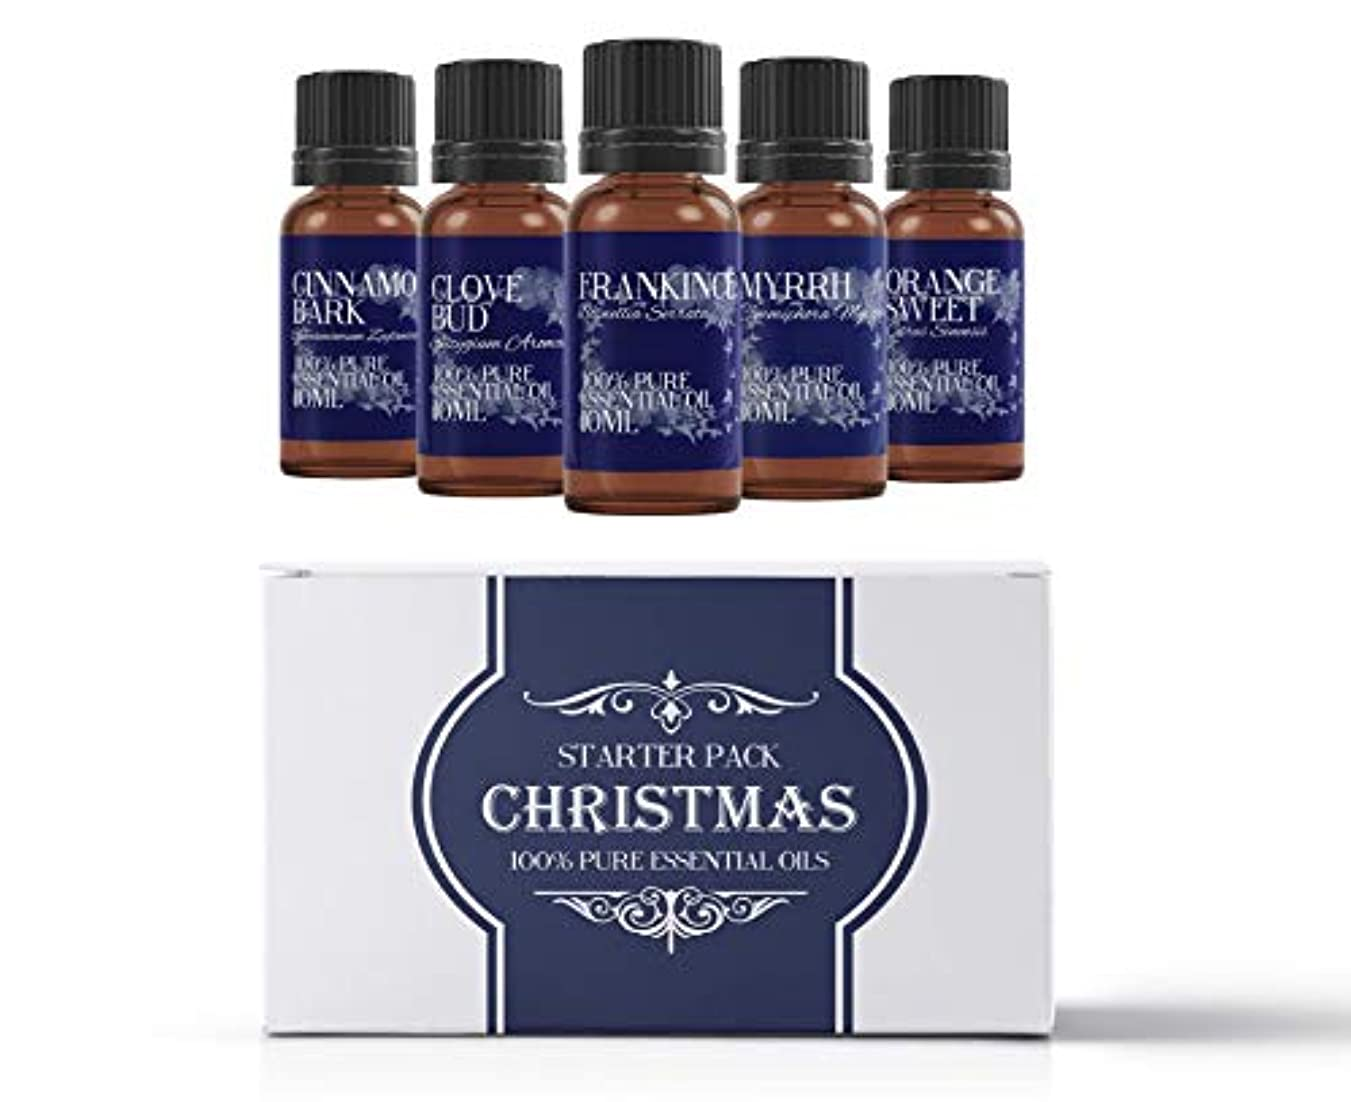 のスコア厳しいガイドMystic Moments | Essential Oil Starter Pack - Christmas Oils - 5 x 10ml - 100% Pure